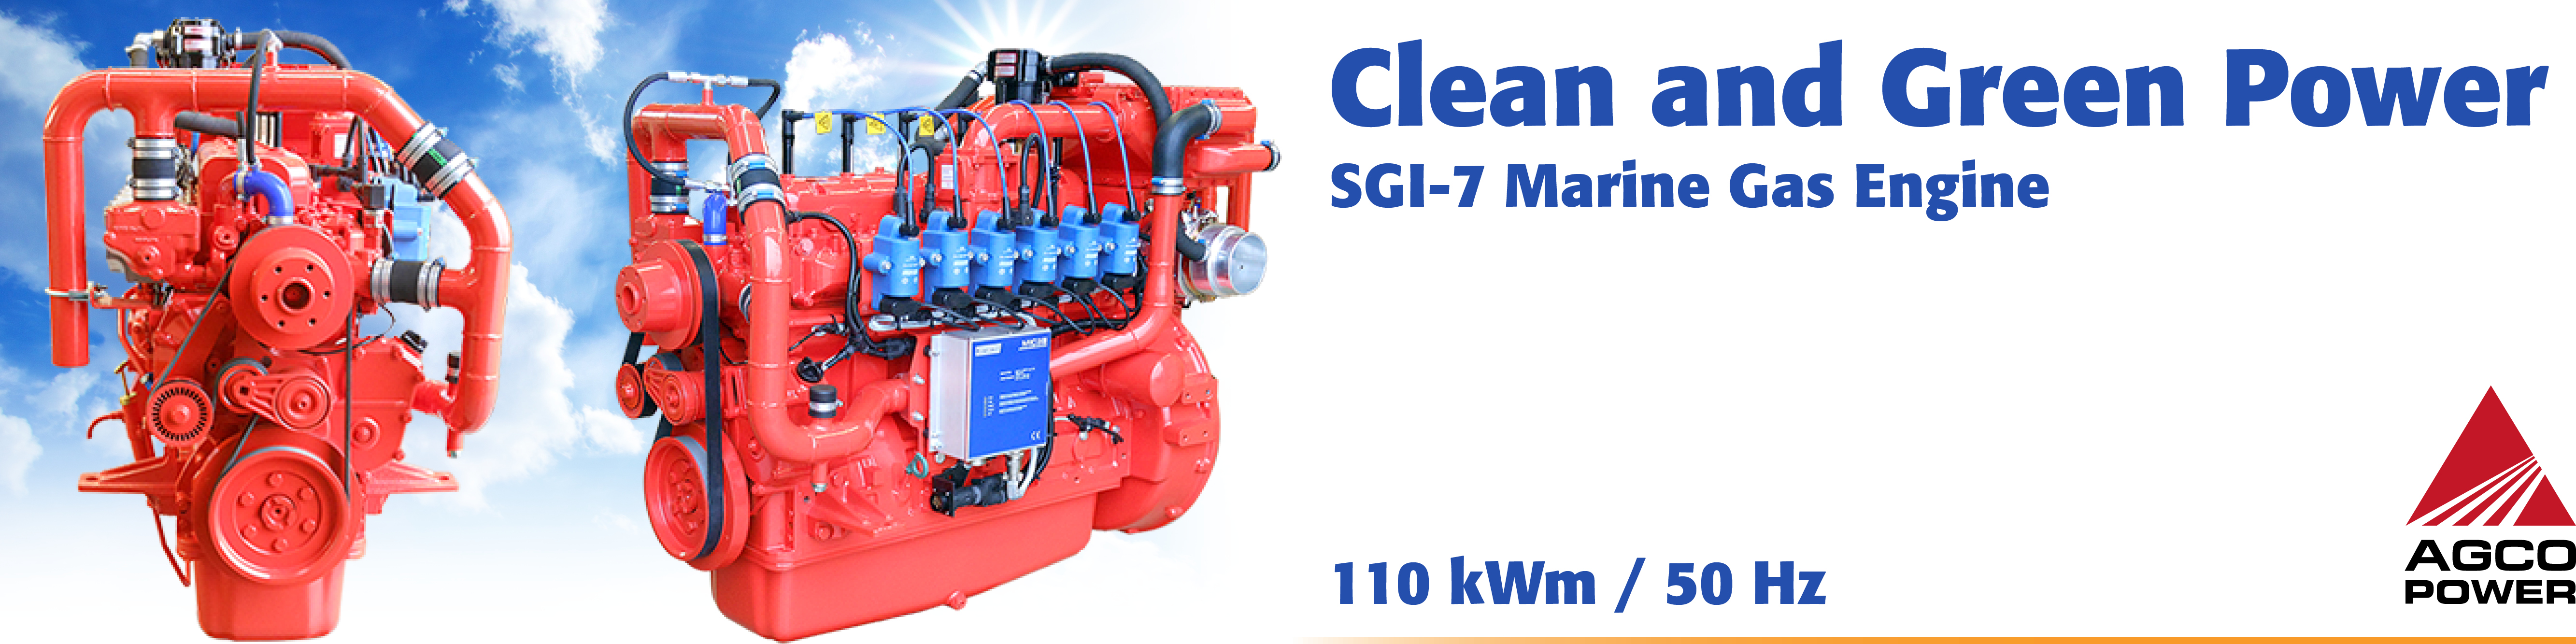 4-SFT-Agco industrial gas engines